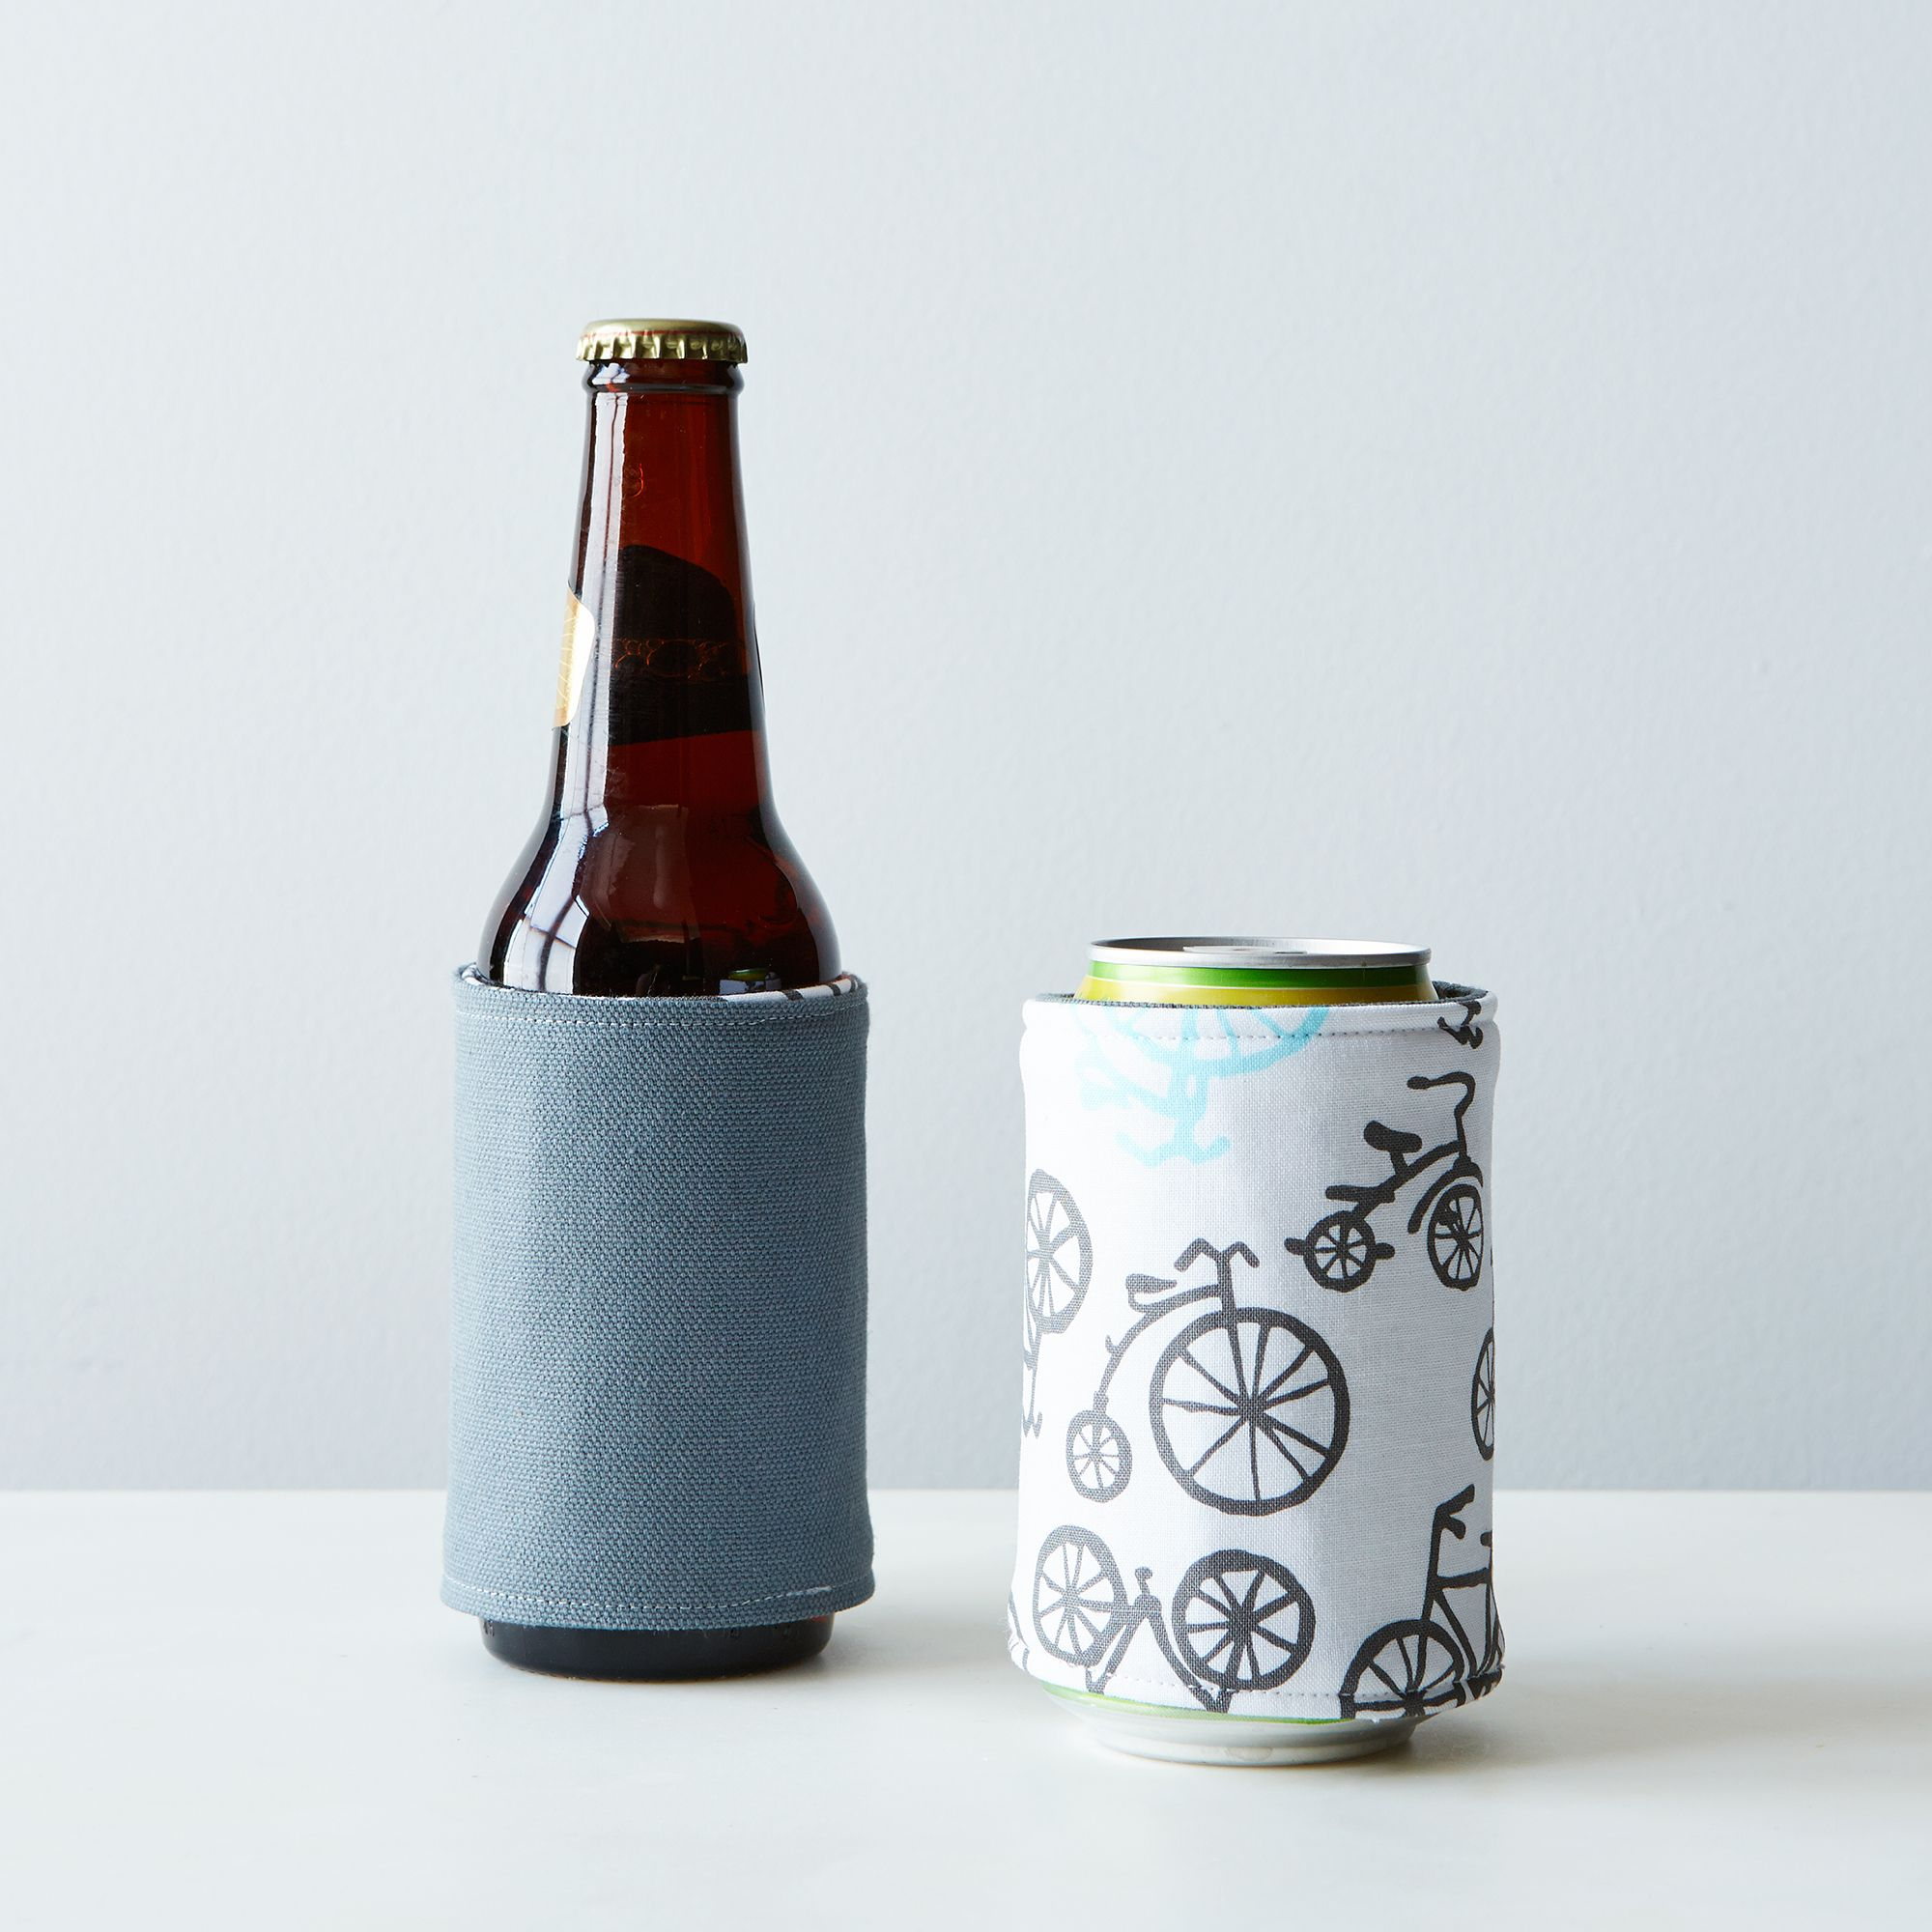 E30fd540 a0f6 11e5 a190 0ef7535729df  dot and army reversible can bottle koozie 2bikes provisions mark weinberg 10 09 14 0523 silo